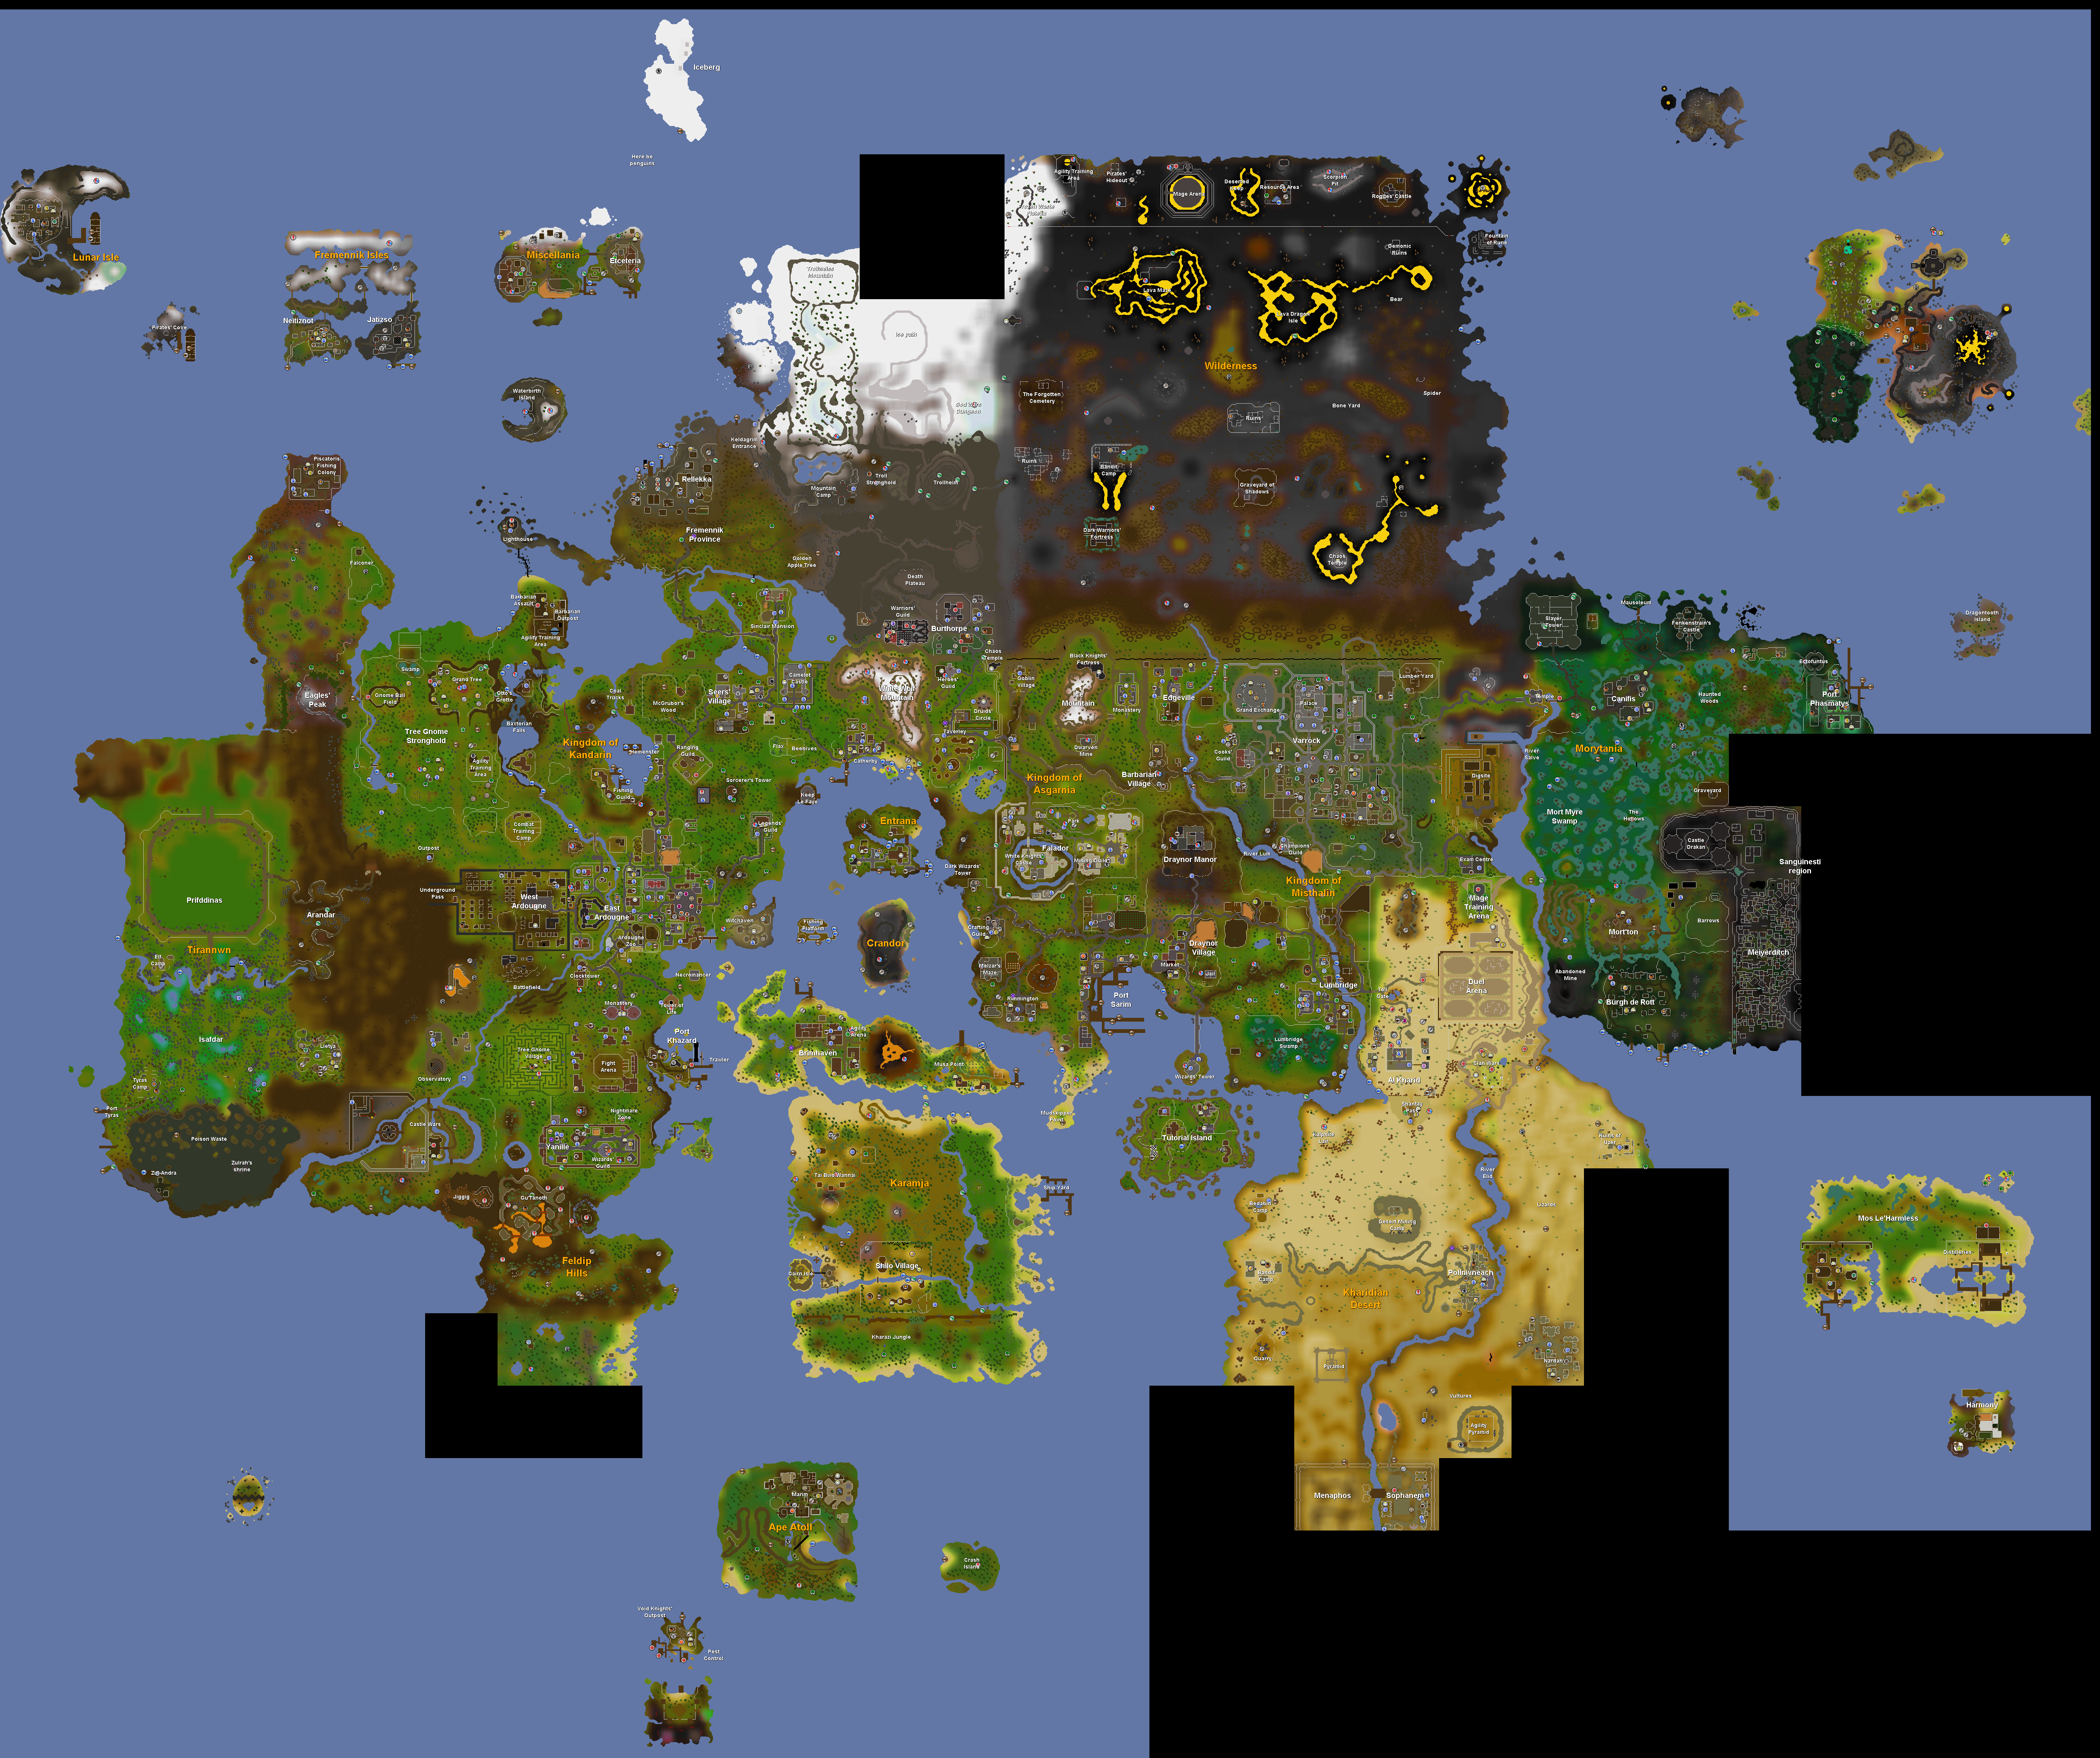 osrs_world_map_nov23_2017